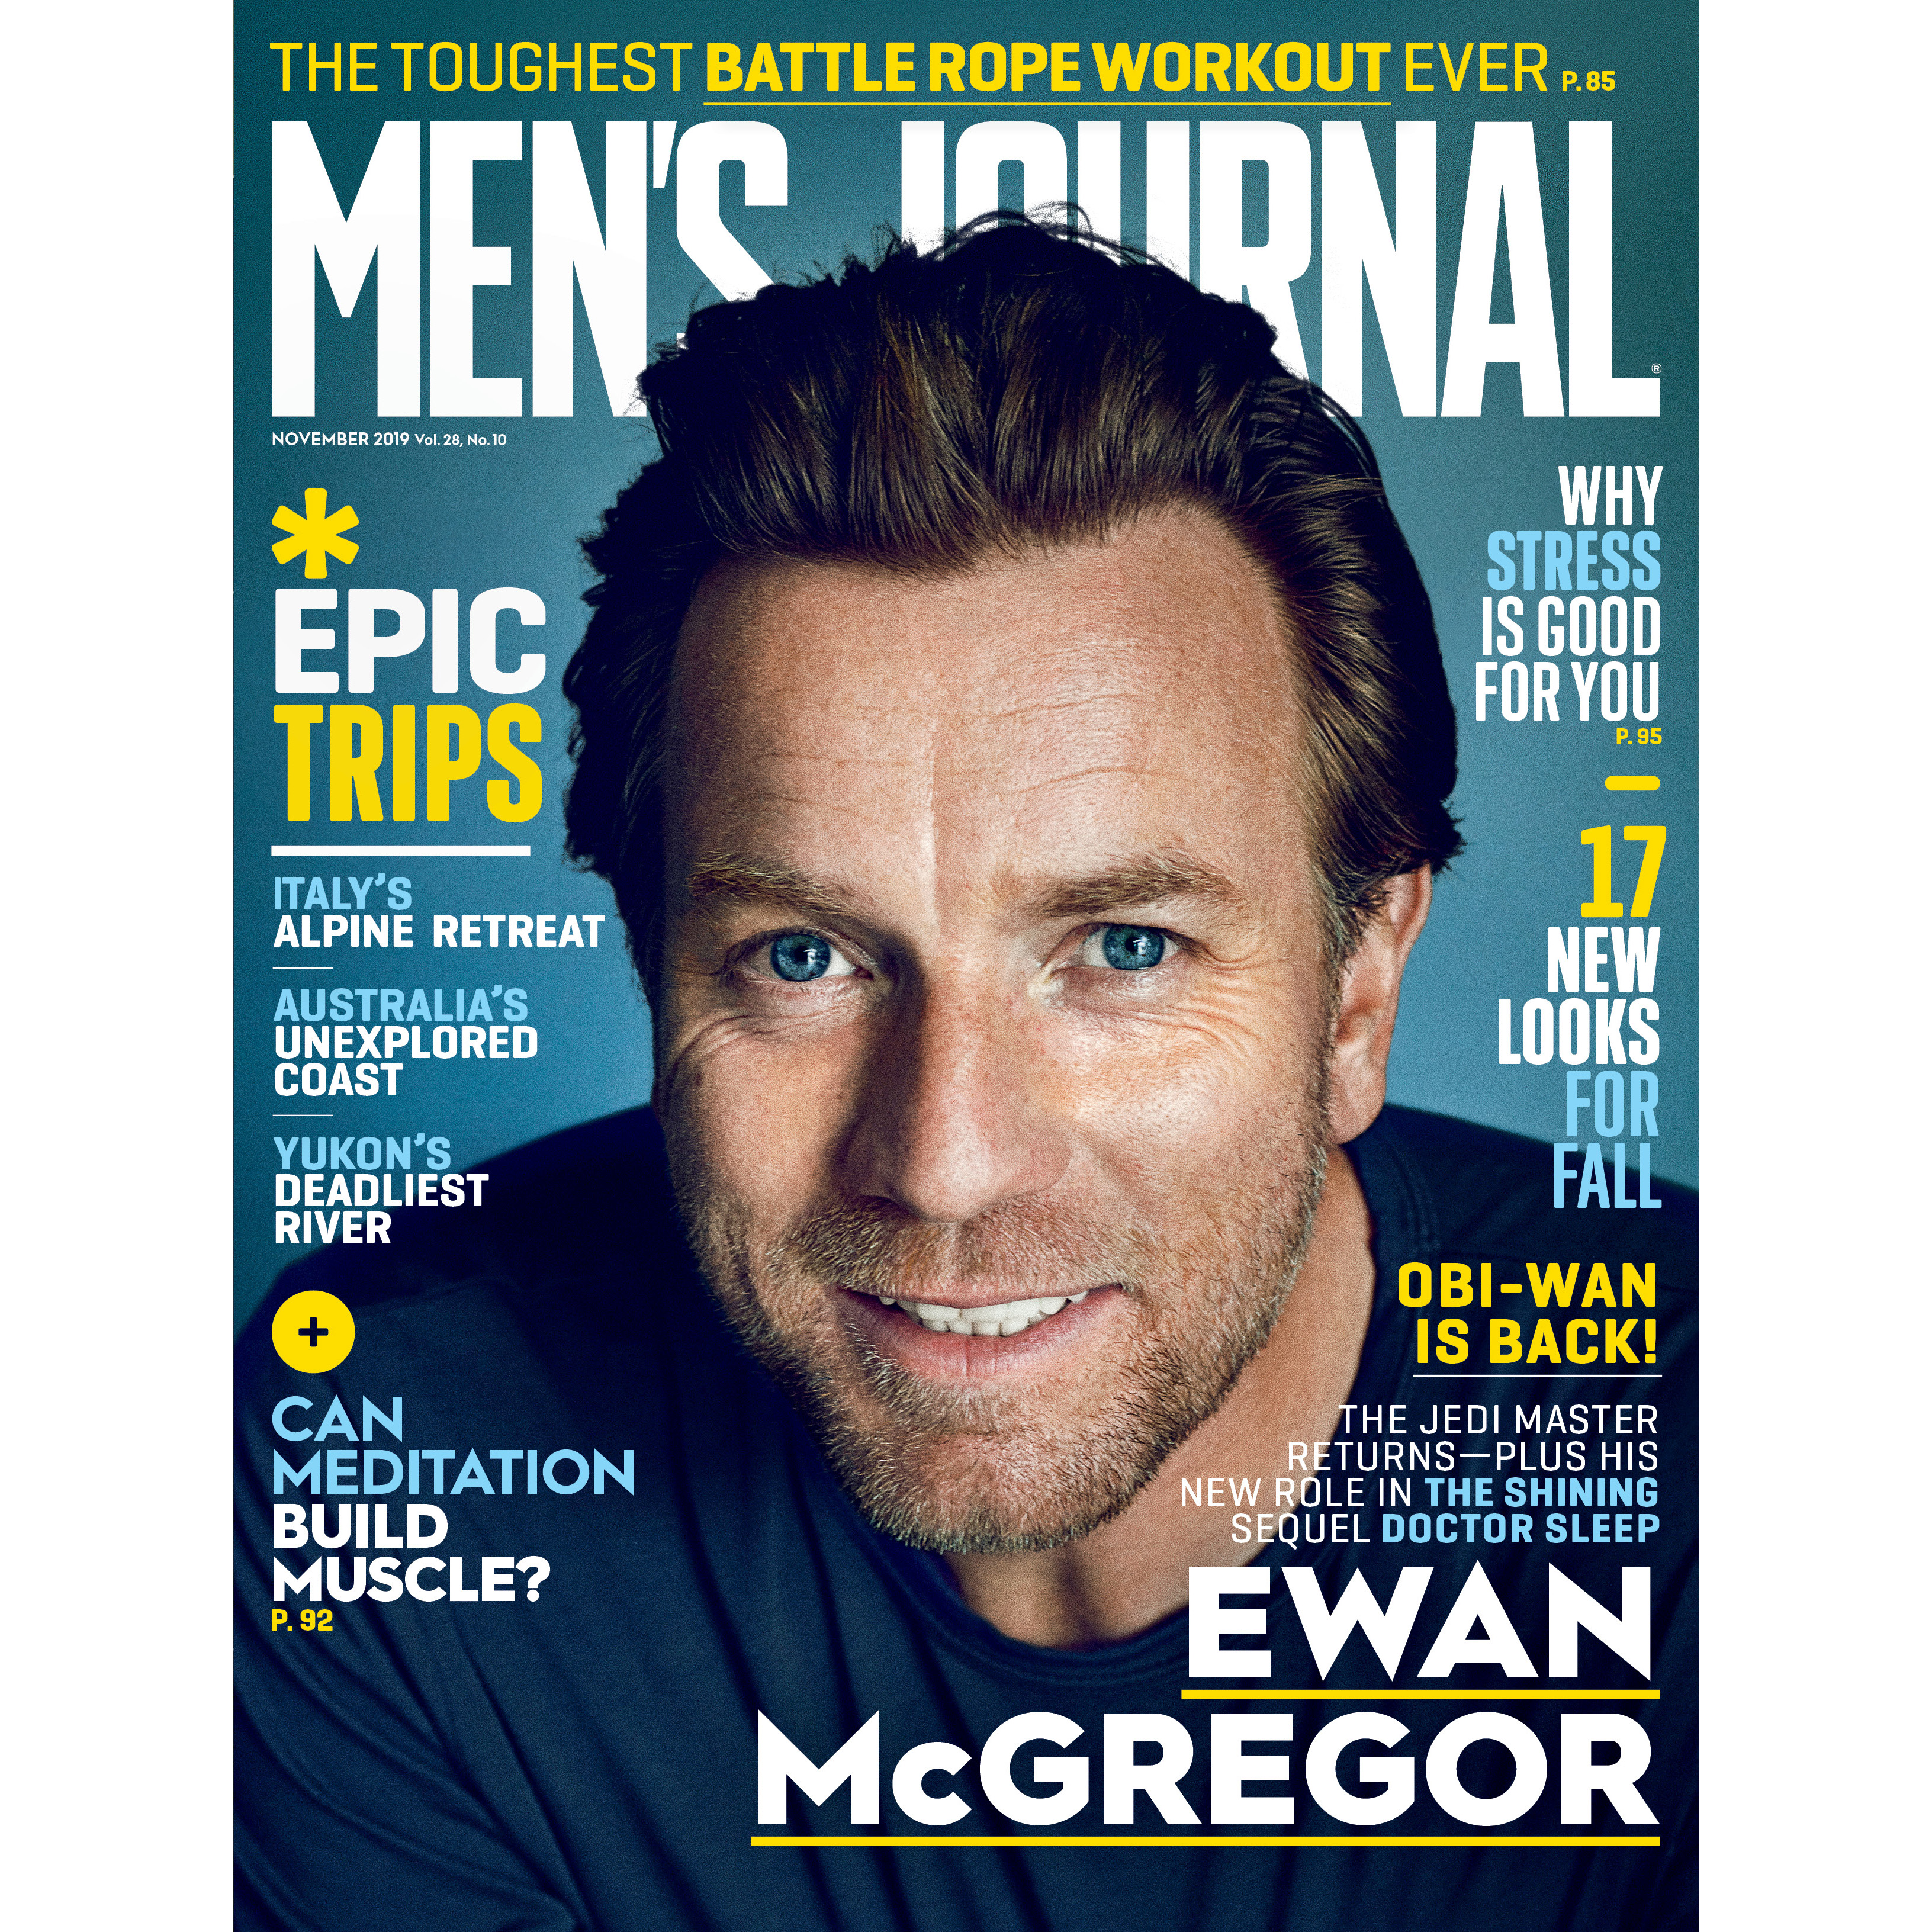 EWAN-MCGREGOR-MENS-JOURNAL-COVER